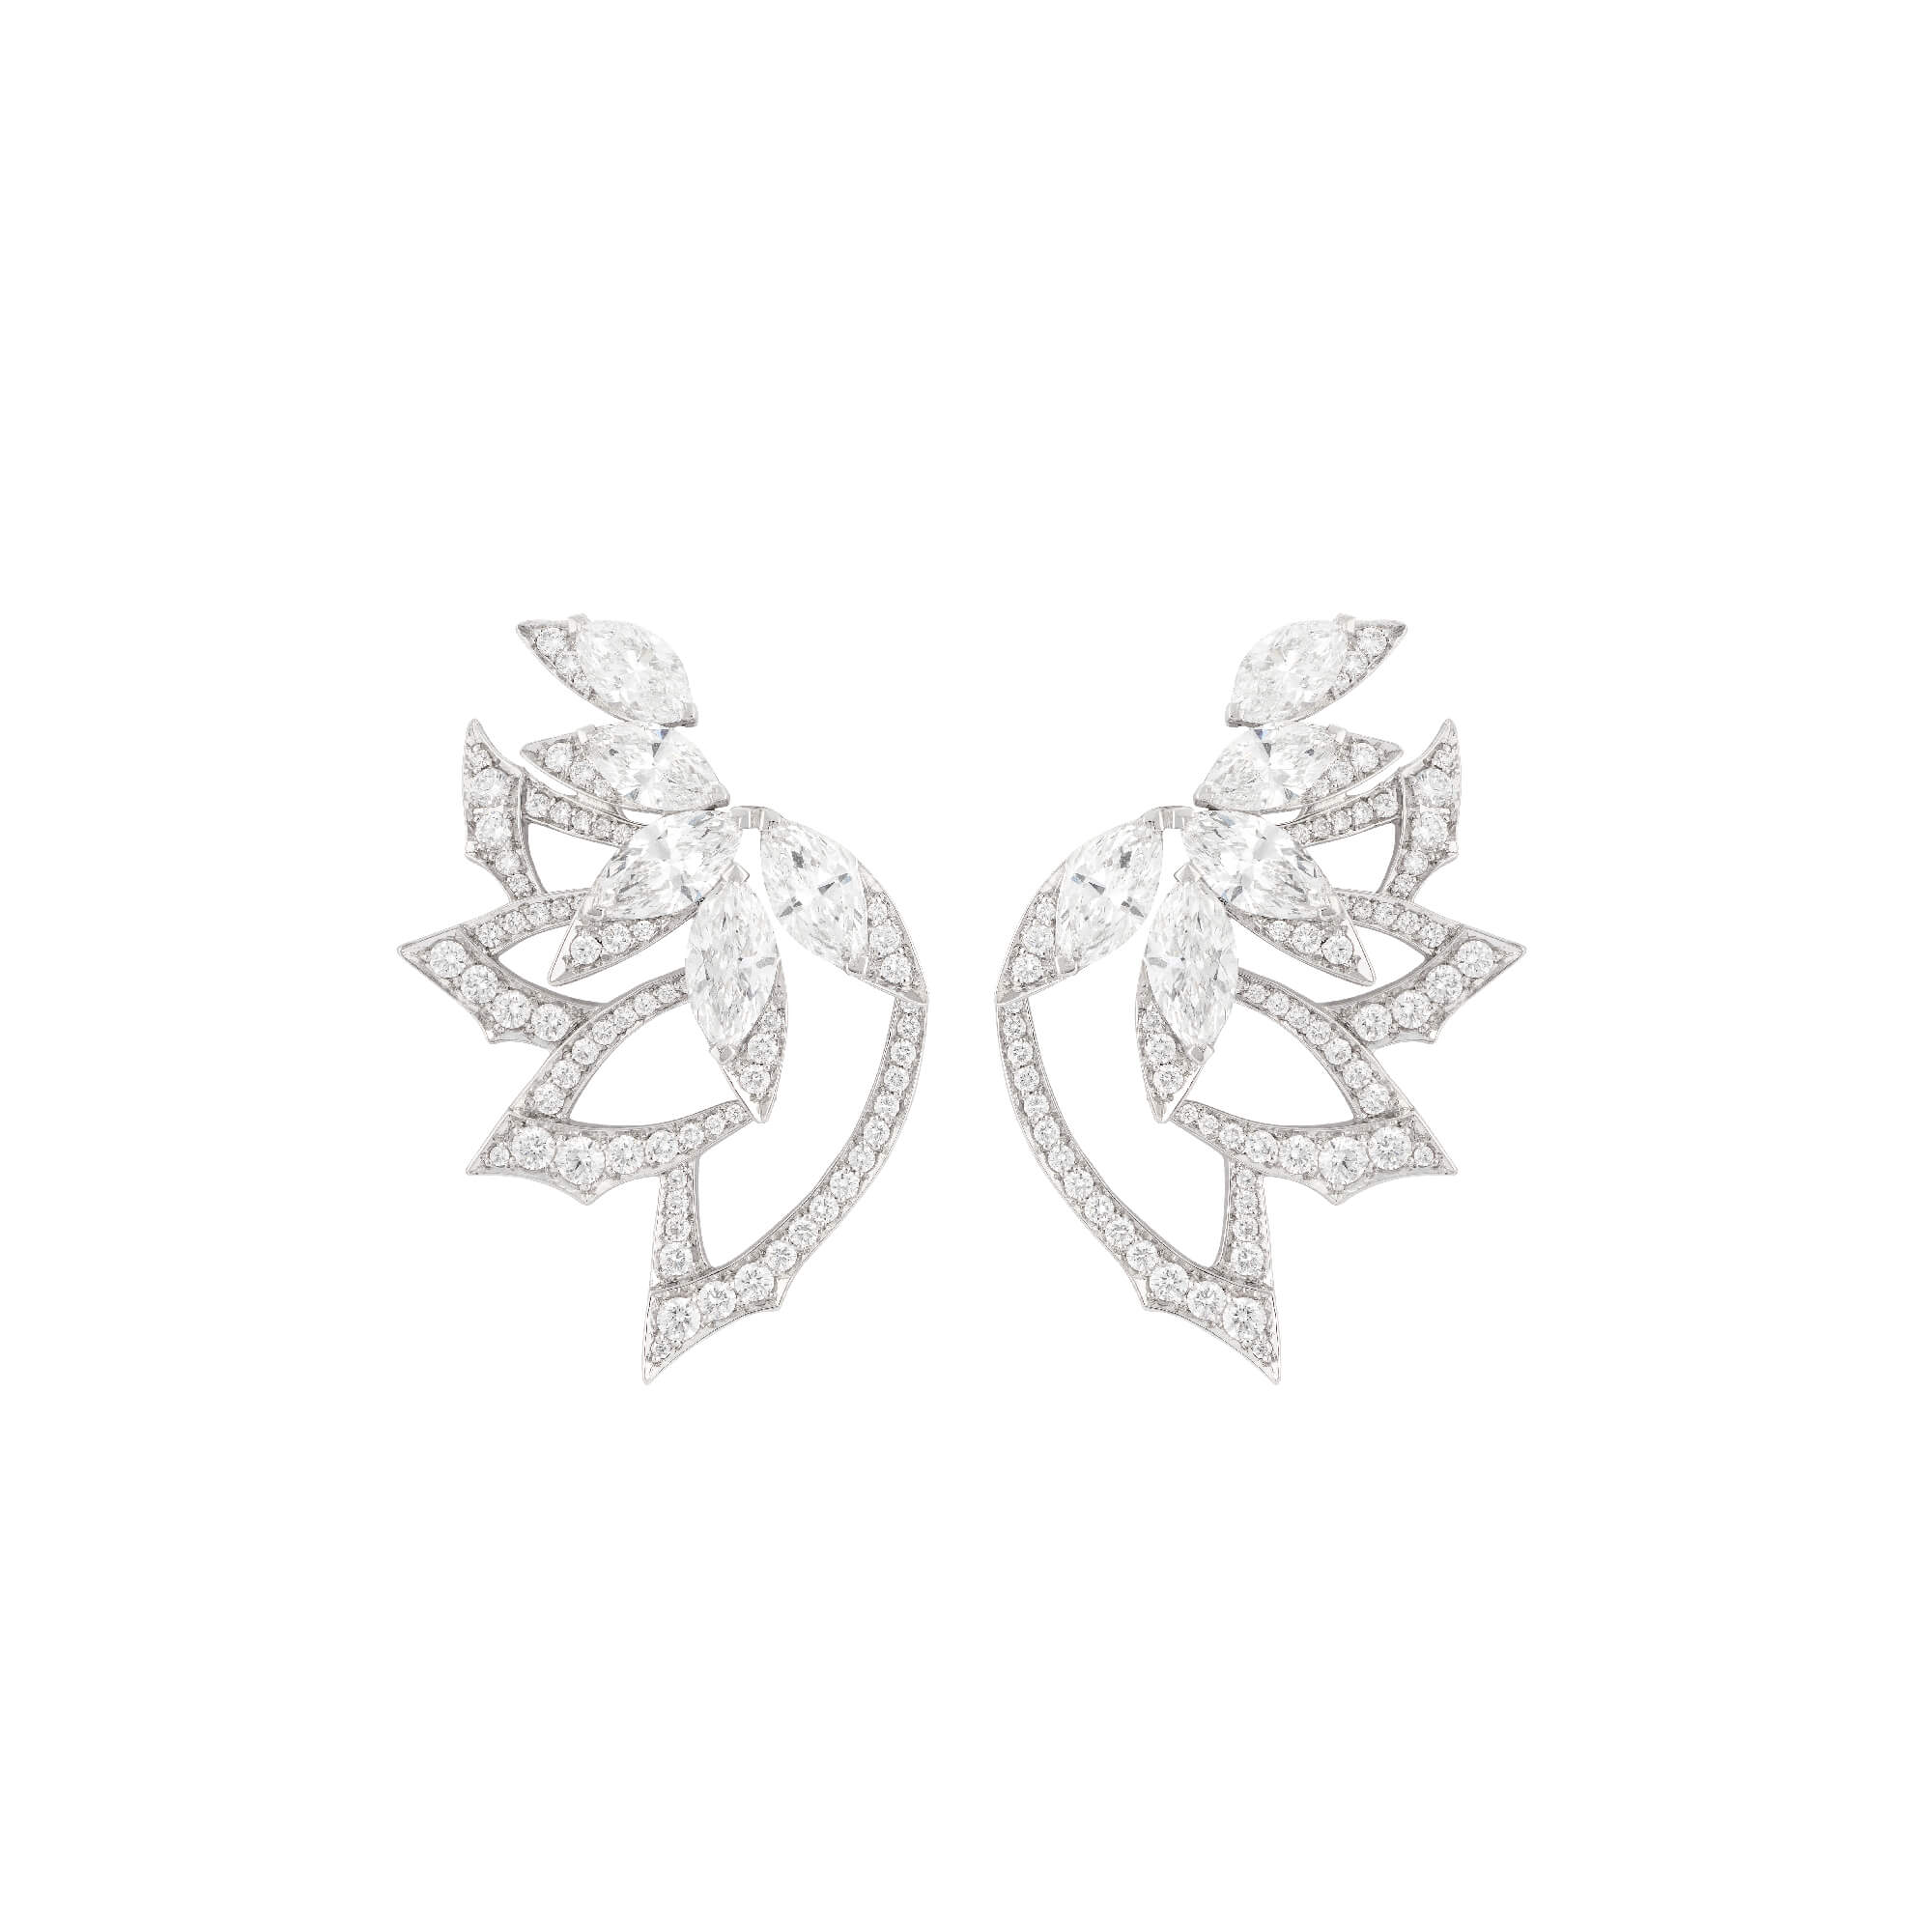 White Gold Plumage Earrings With White Diamond | Magnipheasant